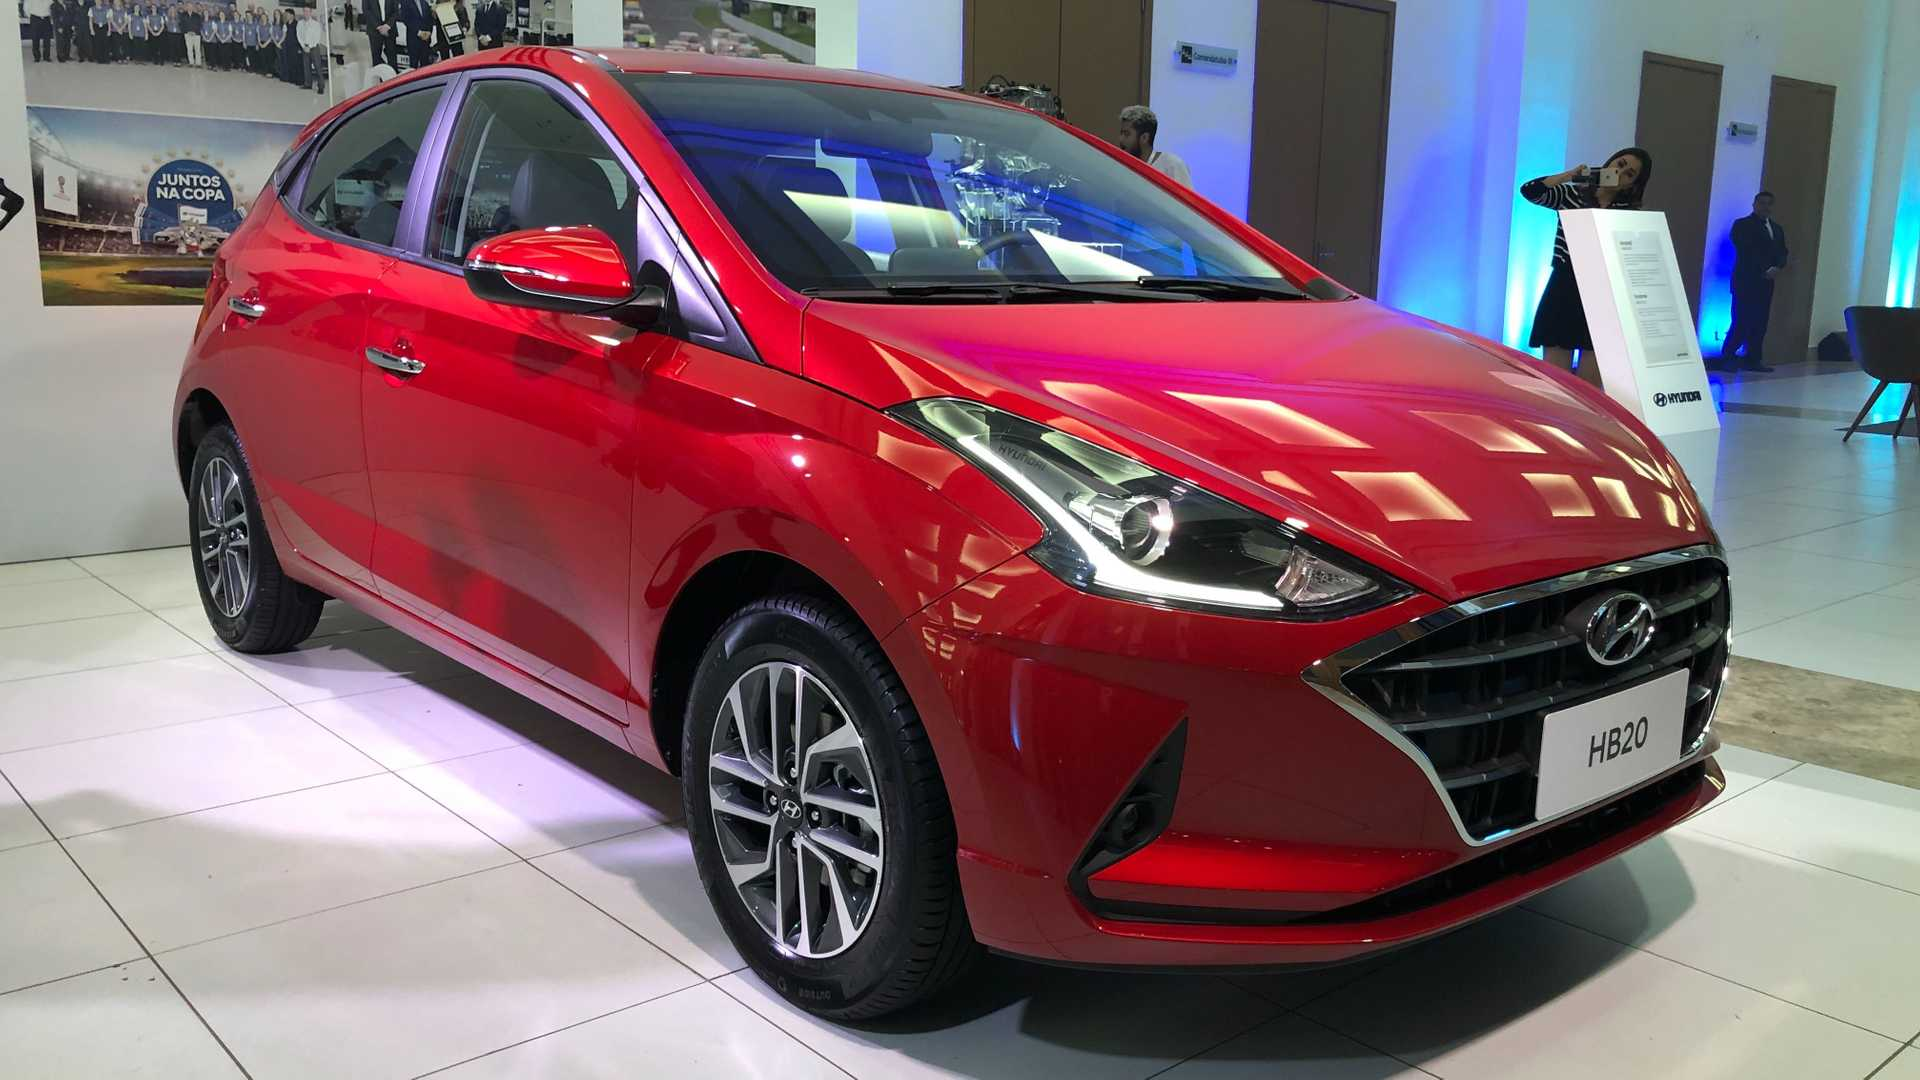 95 Best Hyundai Hb20 2020 Release Date And Concept